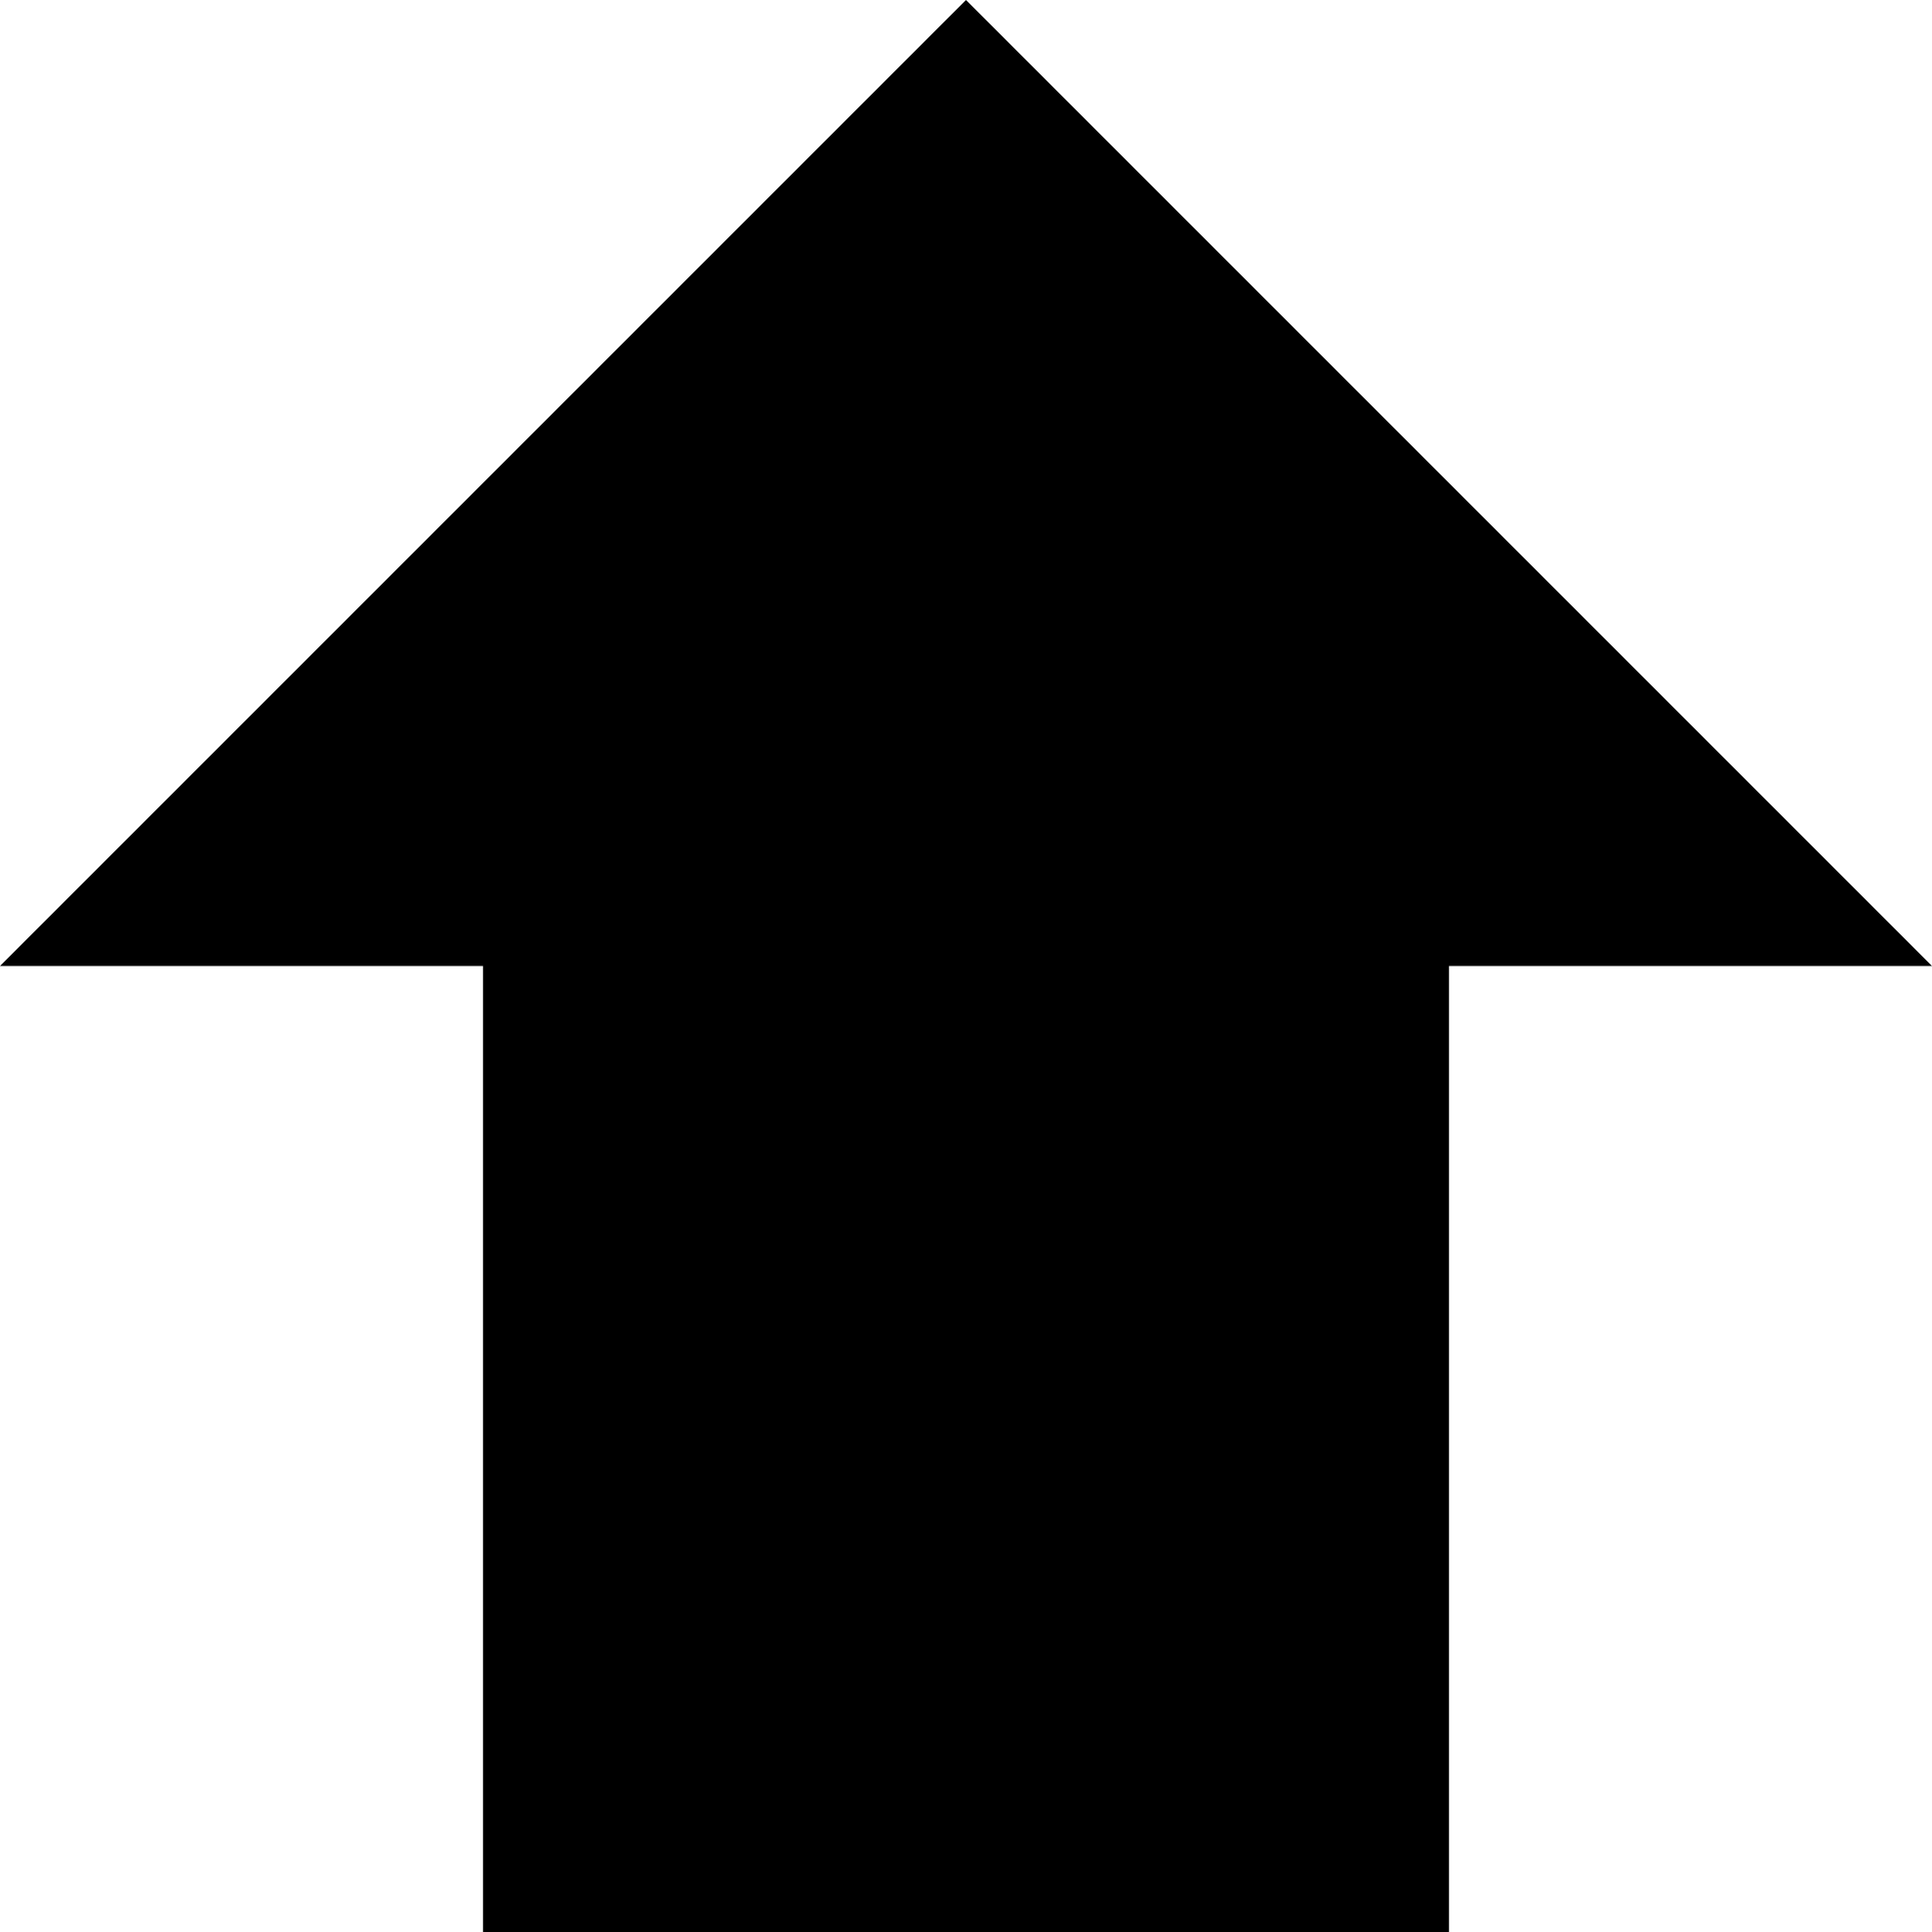 free clipart arrow pointing up - photo #20